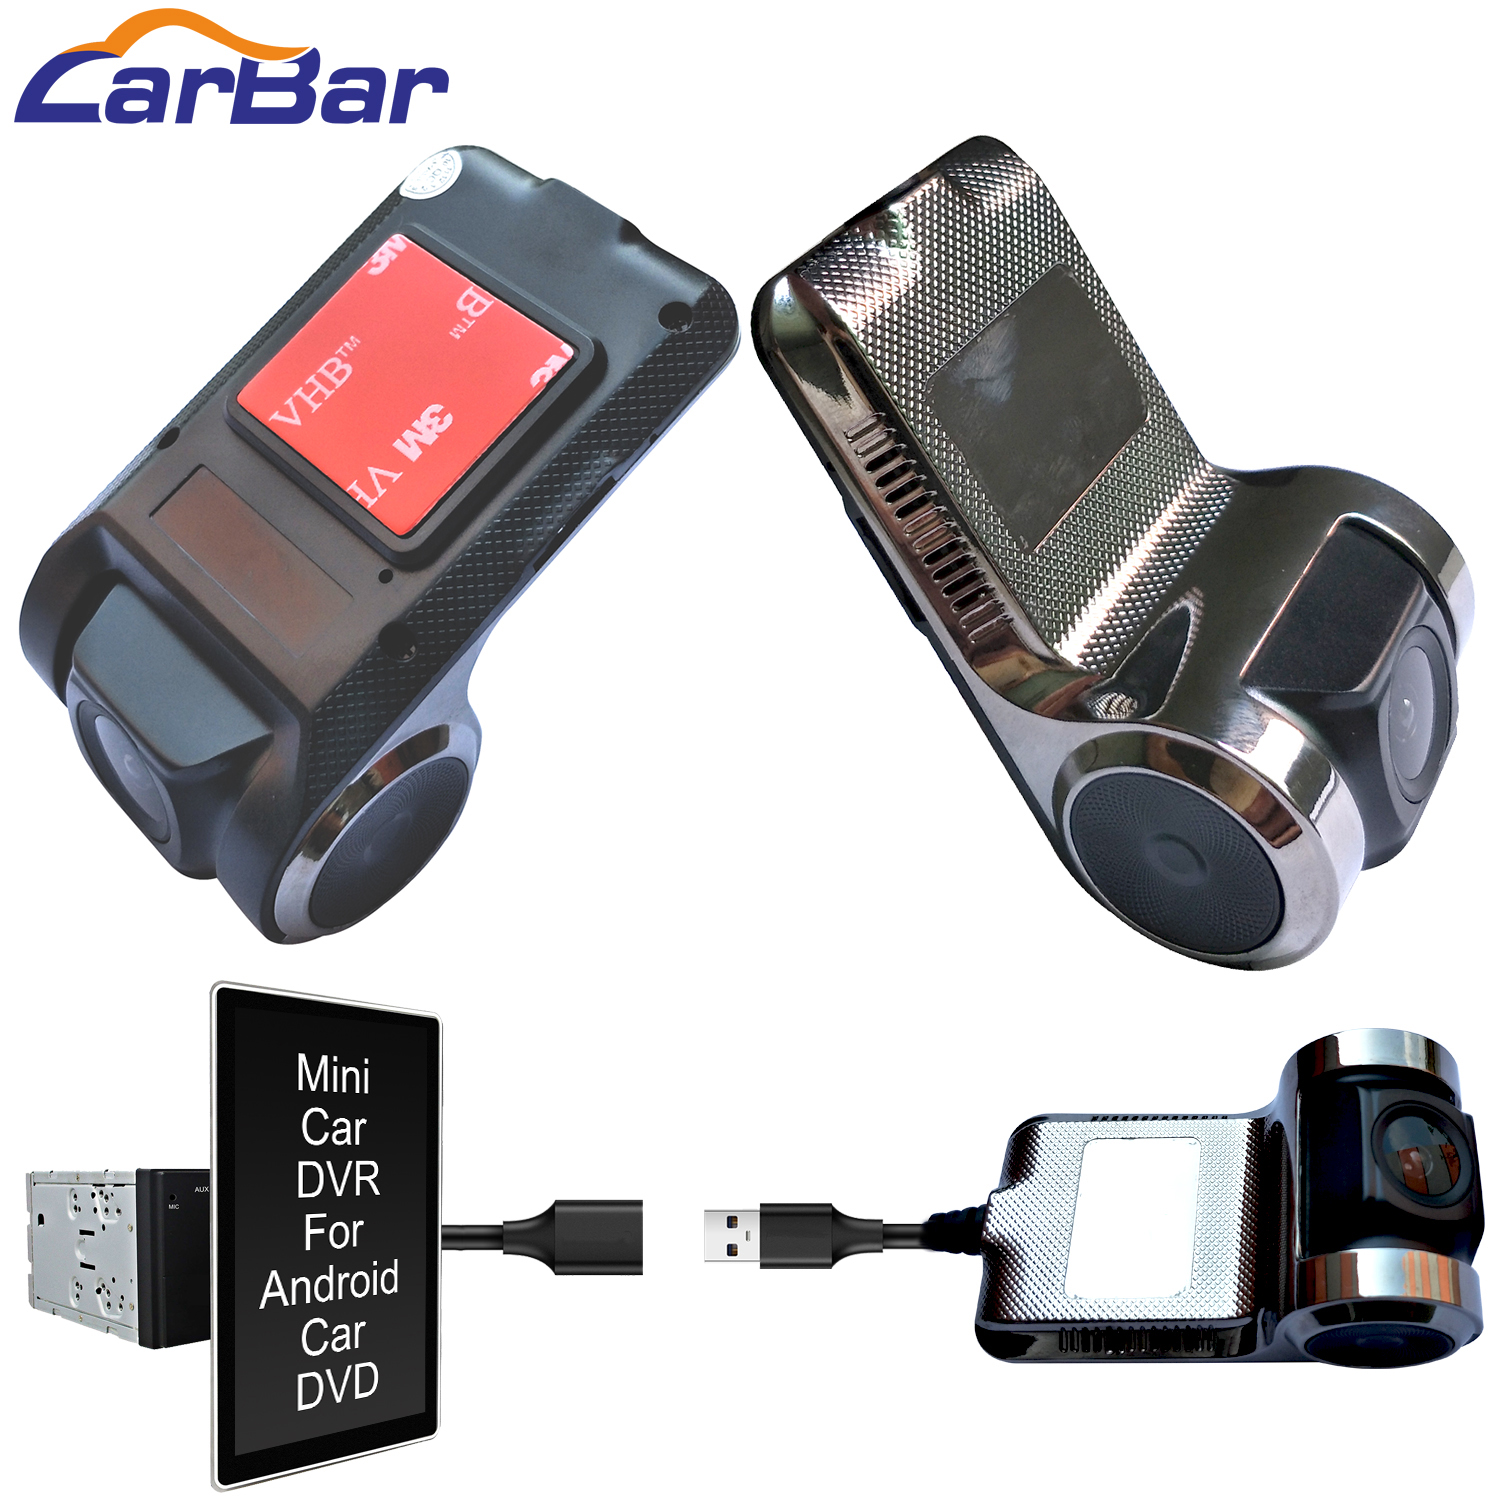 Carbar <font><b>USB</b></font> Car <font><b>DVR</b></font> DVRS for Android Car DVD Video Recorder Camera Dash <font><b>Cam</b></font> Black Box 30fps ADAS Easy Connect image